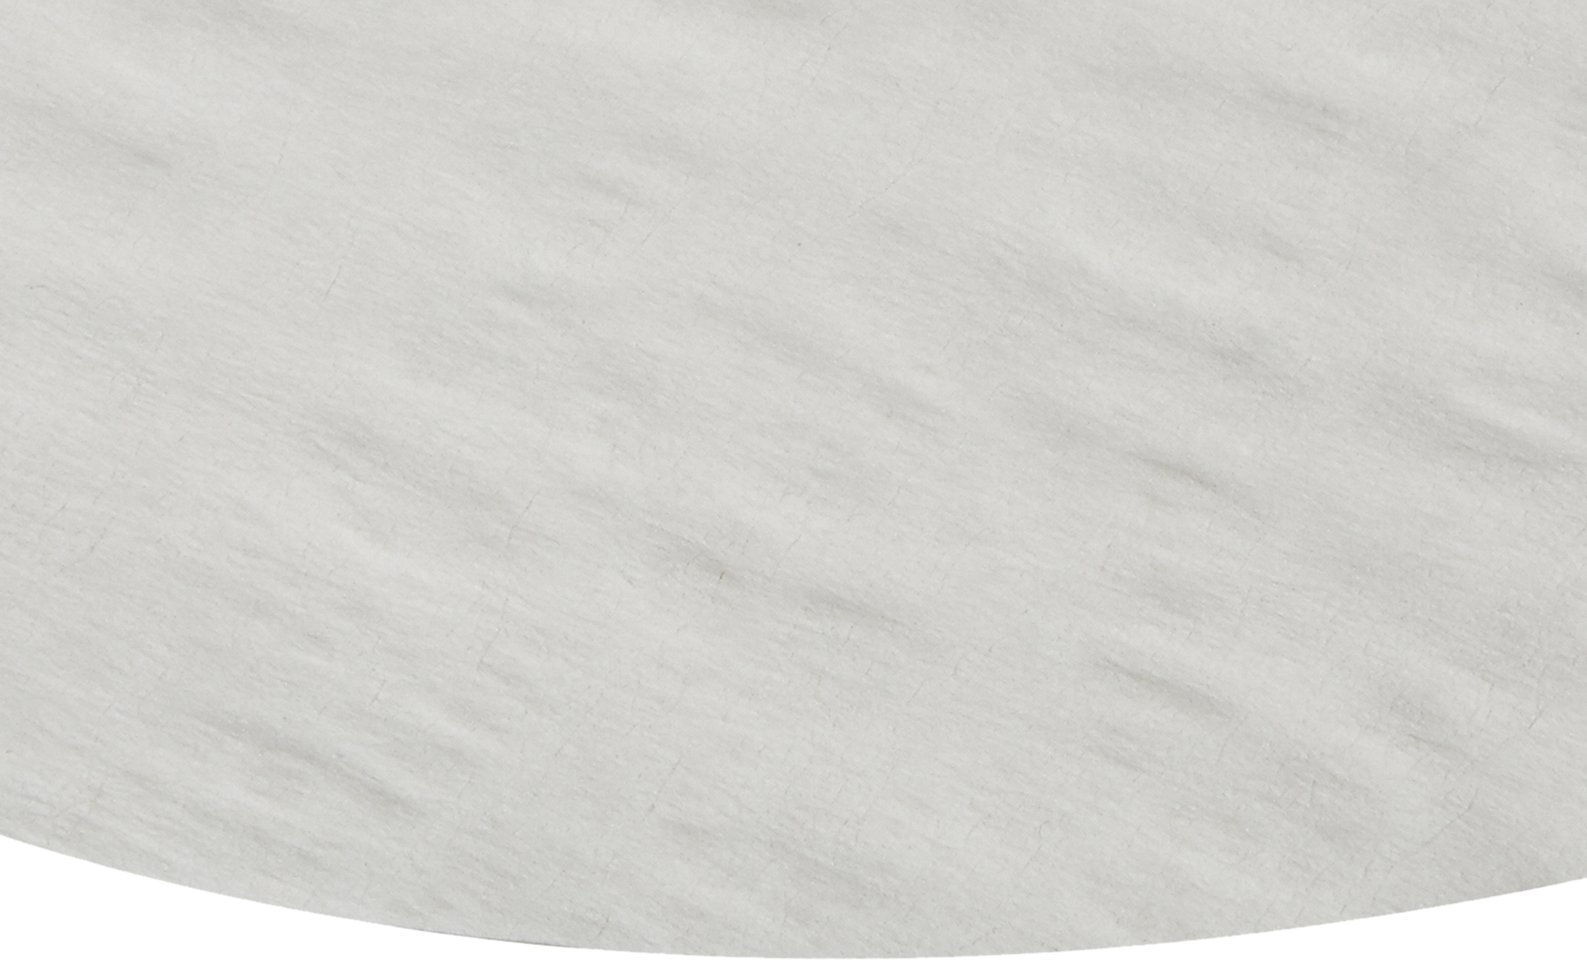 GE Whatman 10347525 Cellulose Qualitative Standard Filter Paper for Technical Use, Shark Skin Grade, Circle, 500mm Diameter (Pack of 100) by Whatman (Image #2)